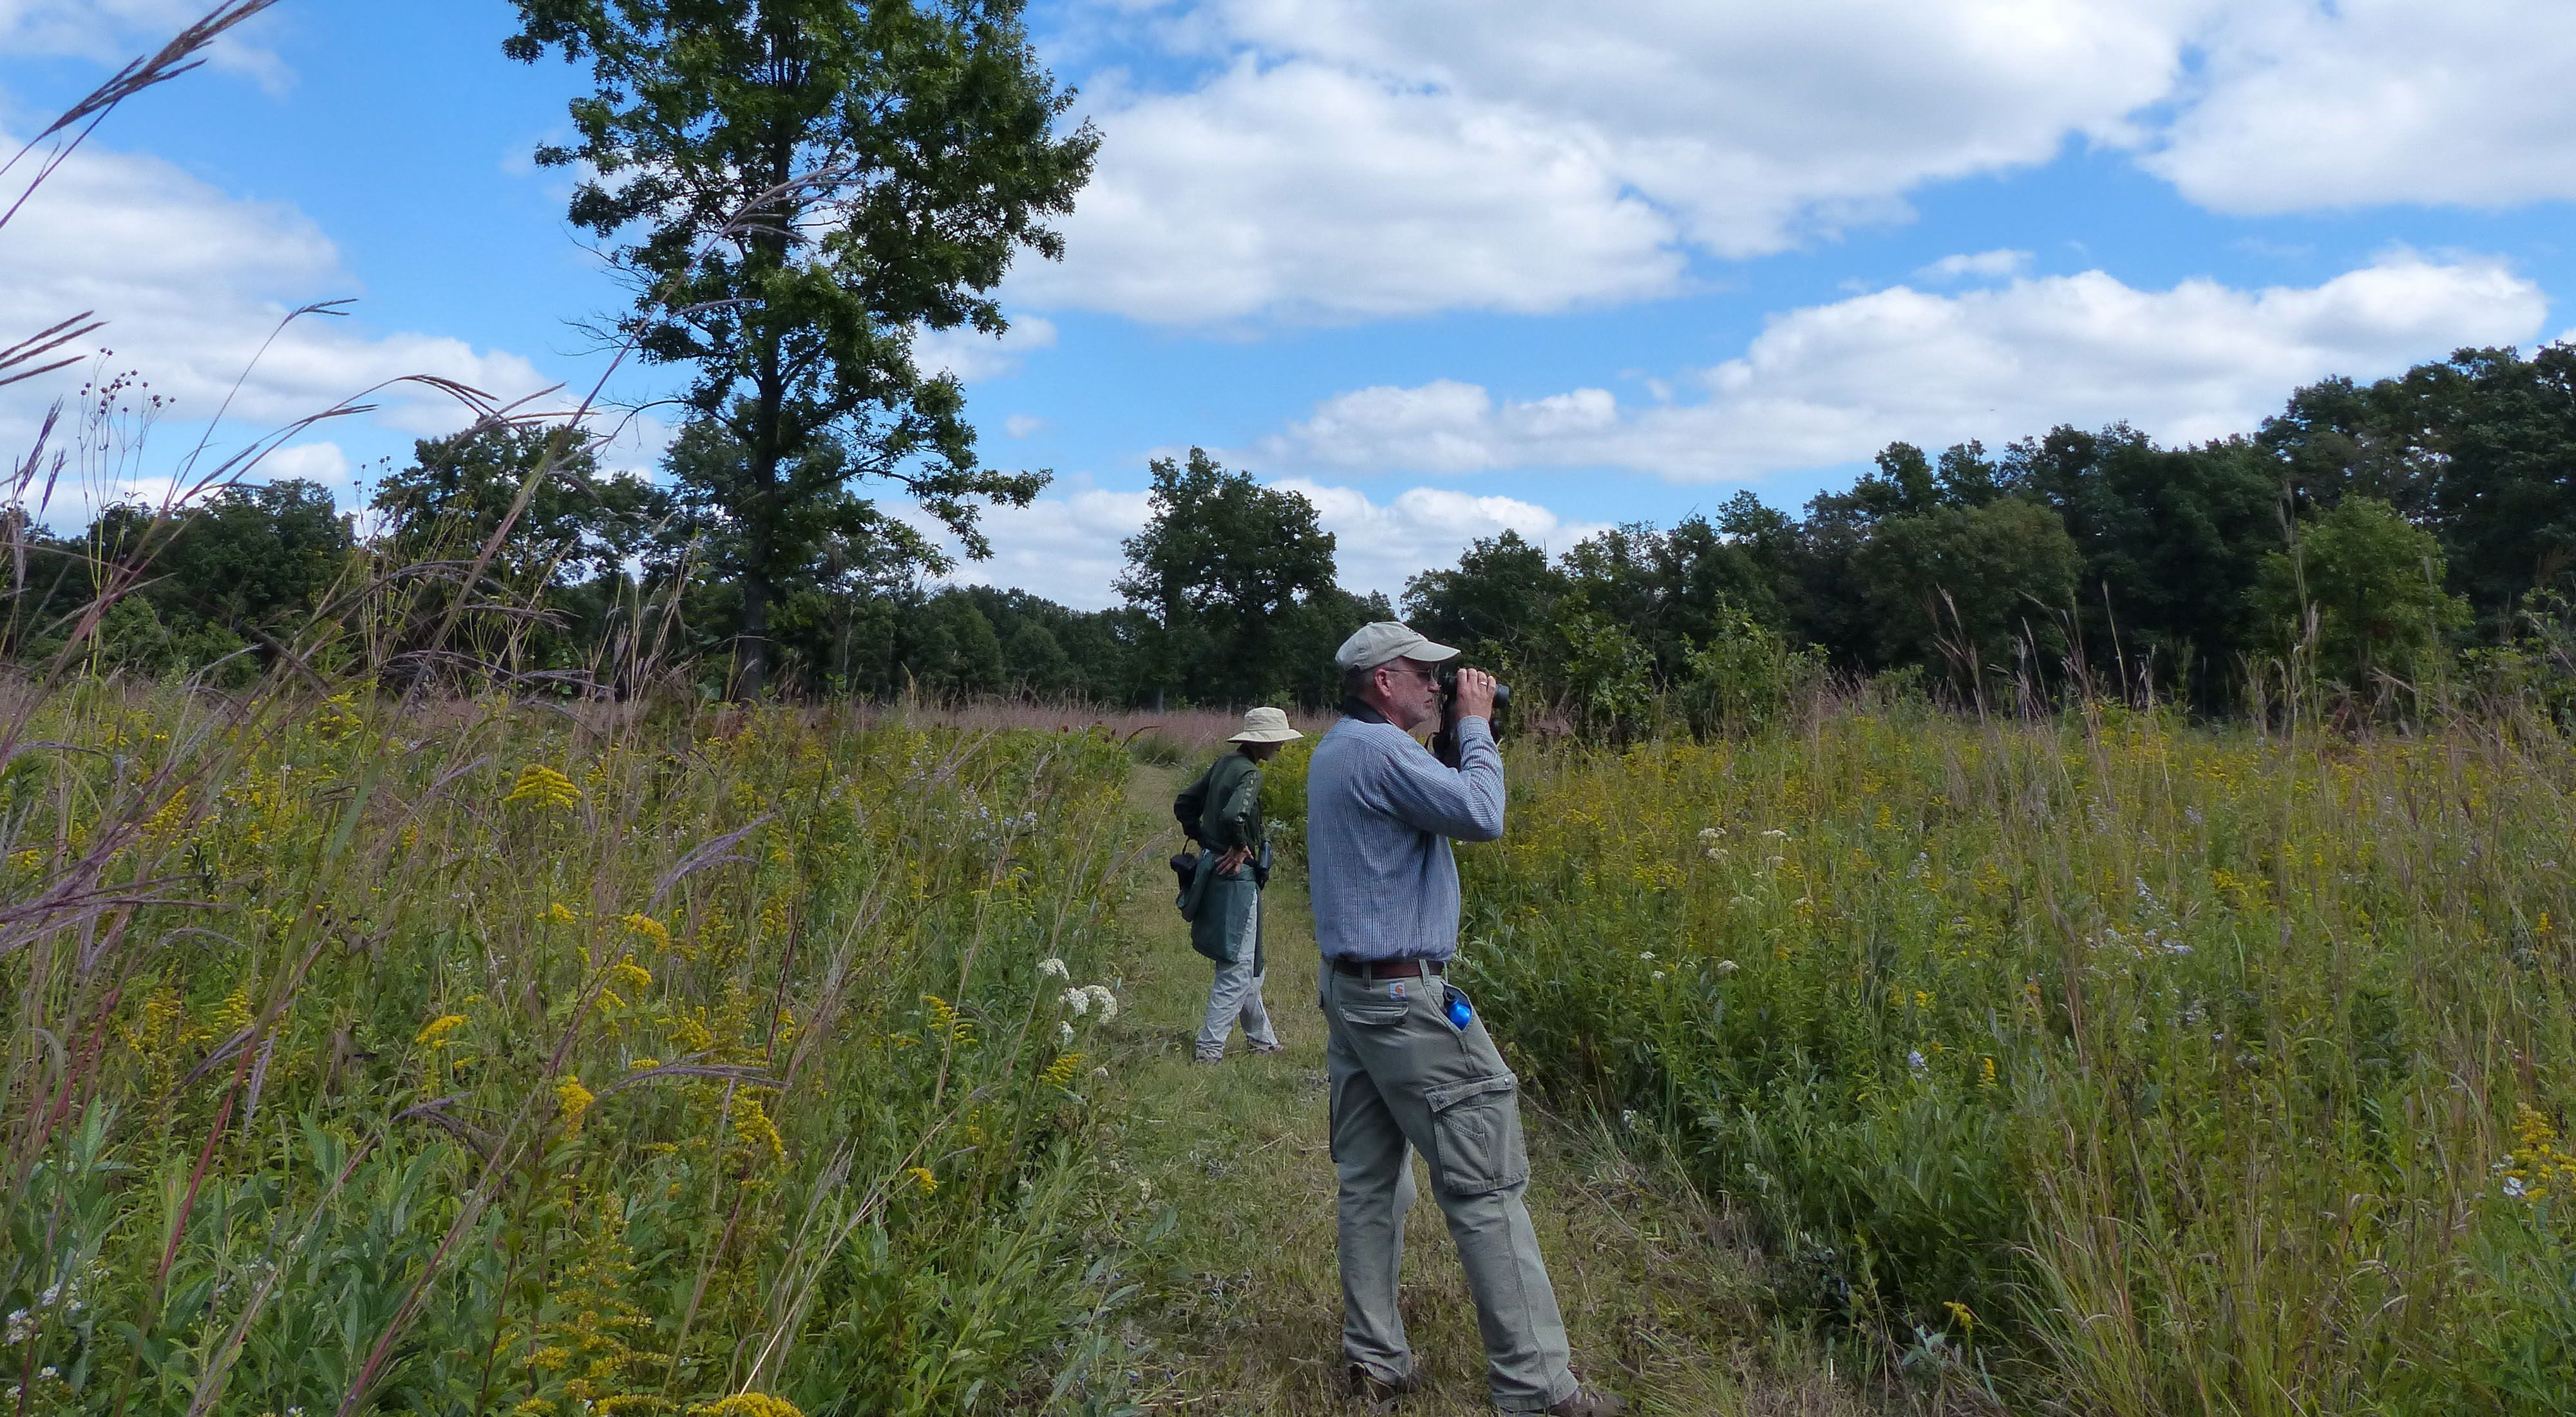 Hikers at Kitty Todd Preserve use binoculars to get a better look at the abundant wildflowers and wildlife.